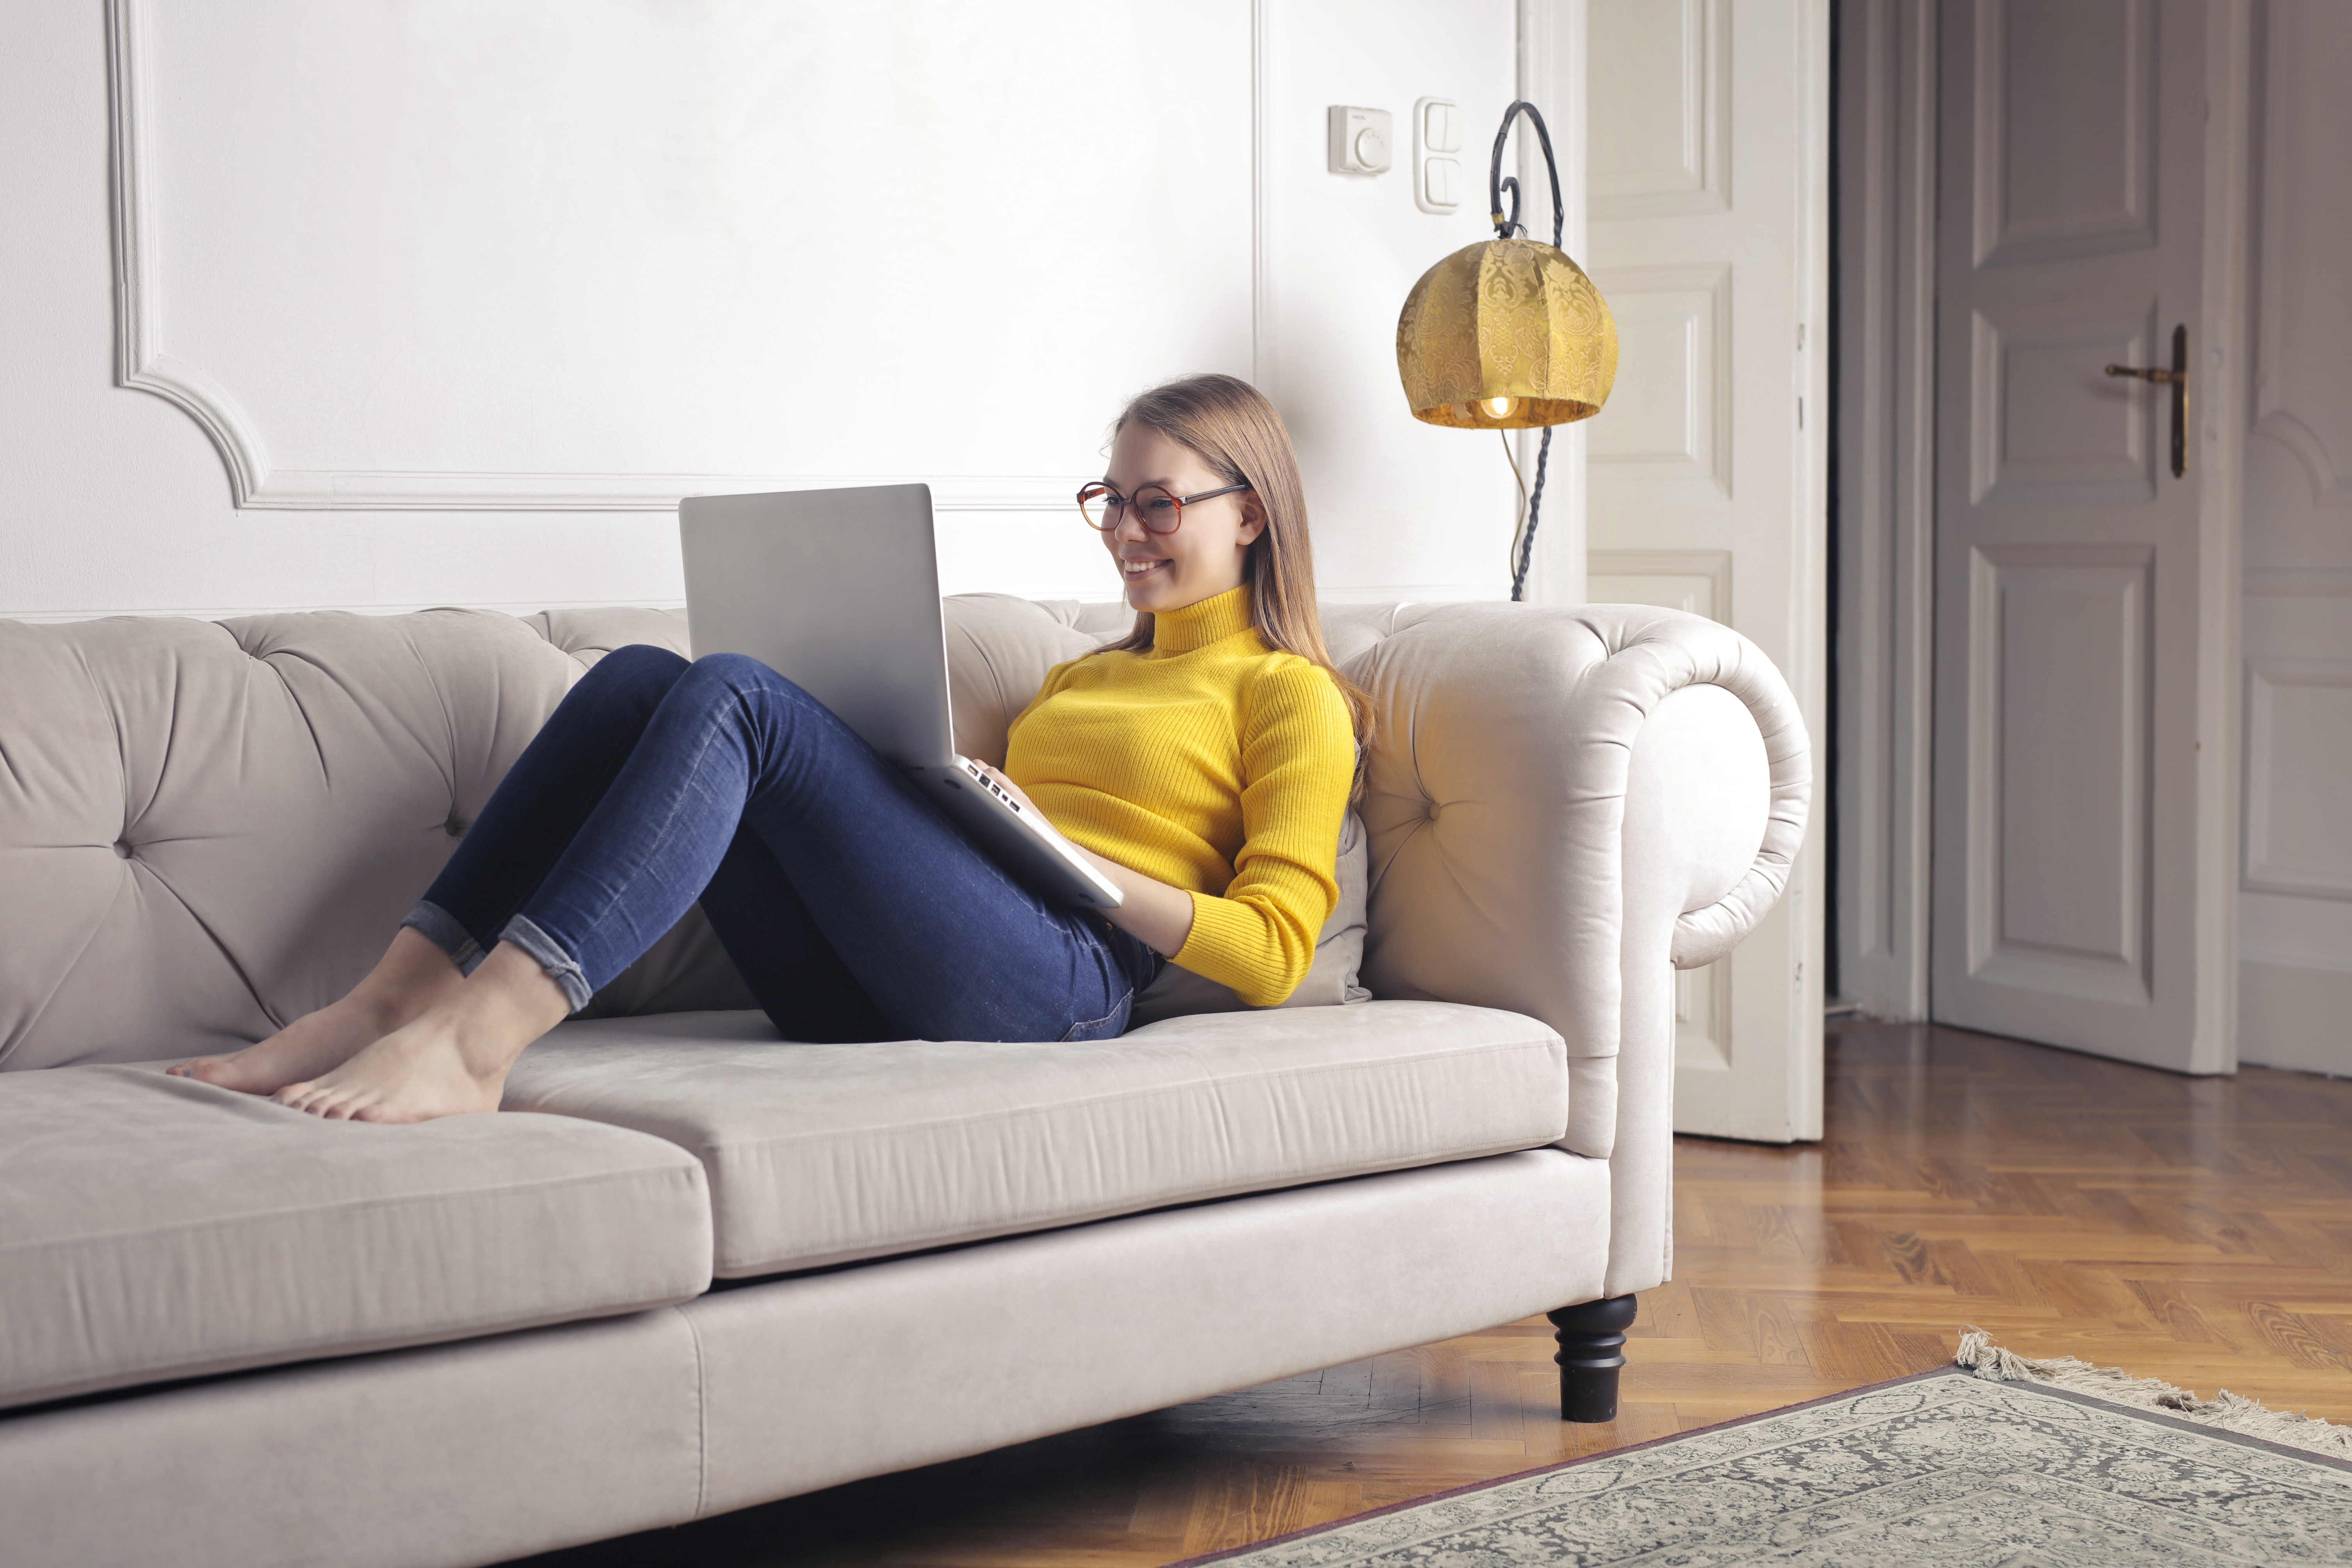 woman-in-yellow-long-sleeve-using-portable-computer-3769001(1).jpg